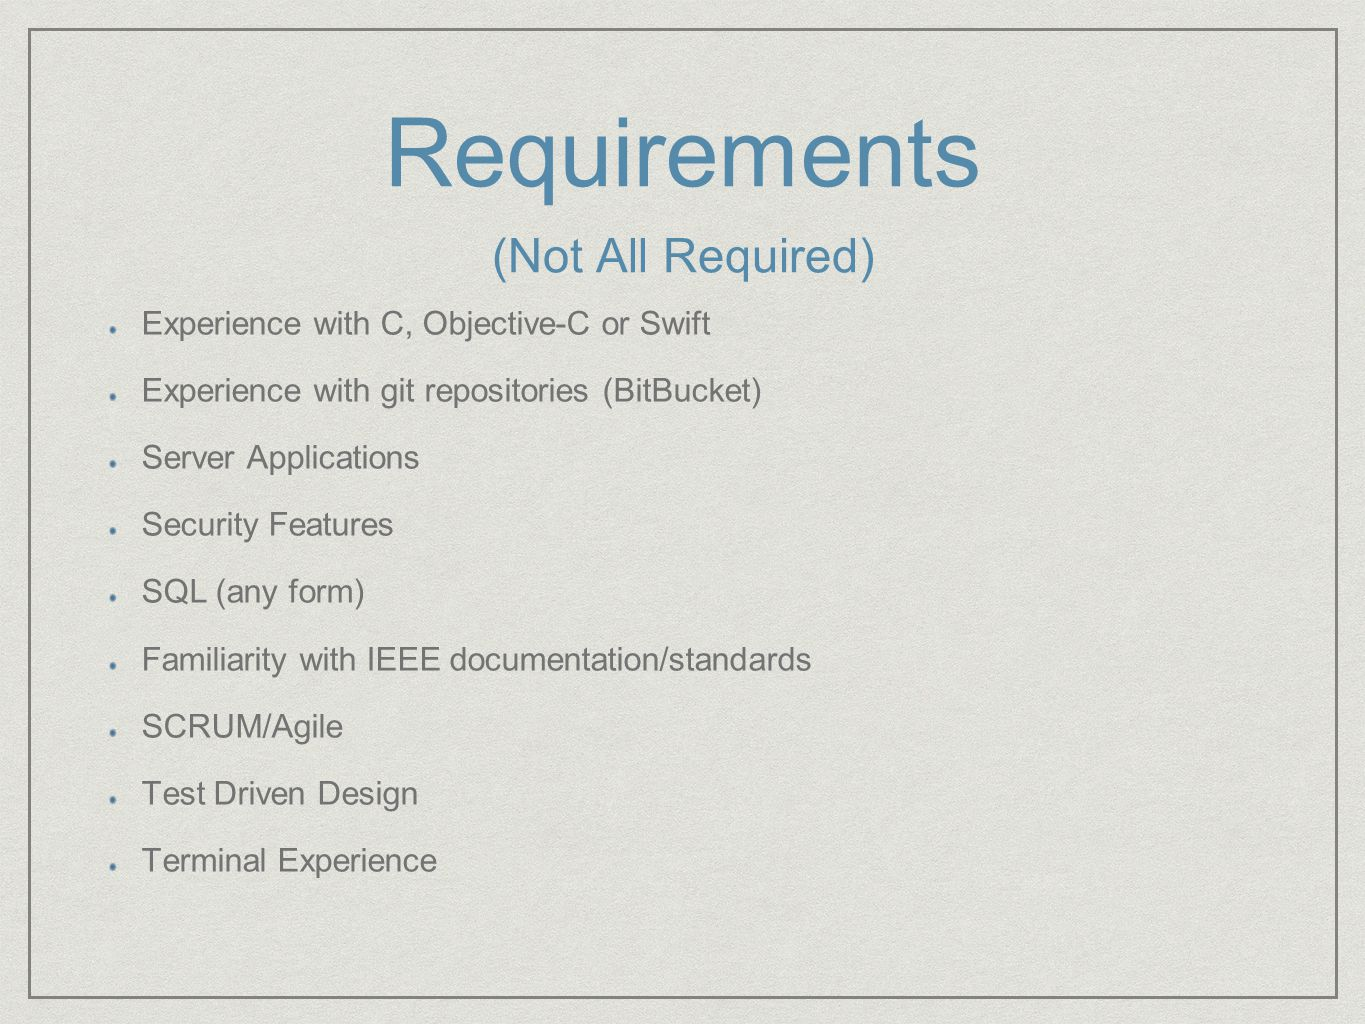 Requirements Experience with C, Objective-C or Swift Experience with git repositories (BitBucket) Server Applications Security Features SQL (any form) Familiarity with IEEE documentation/standards SCRUM/Agile Test Driven Design Terminal Experience (Not All Required)